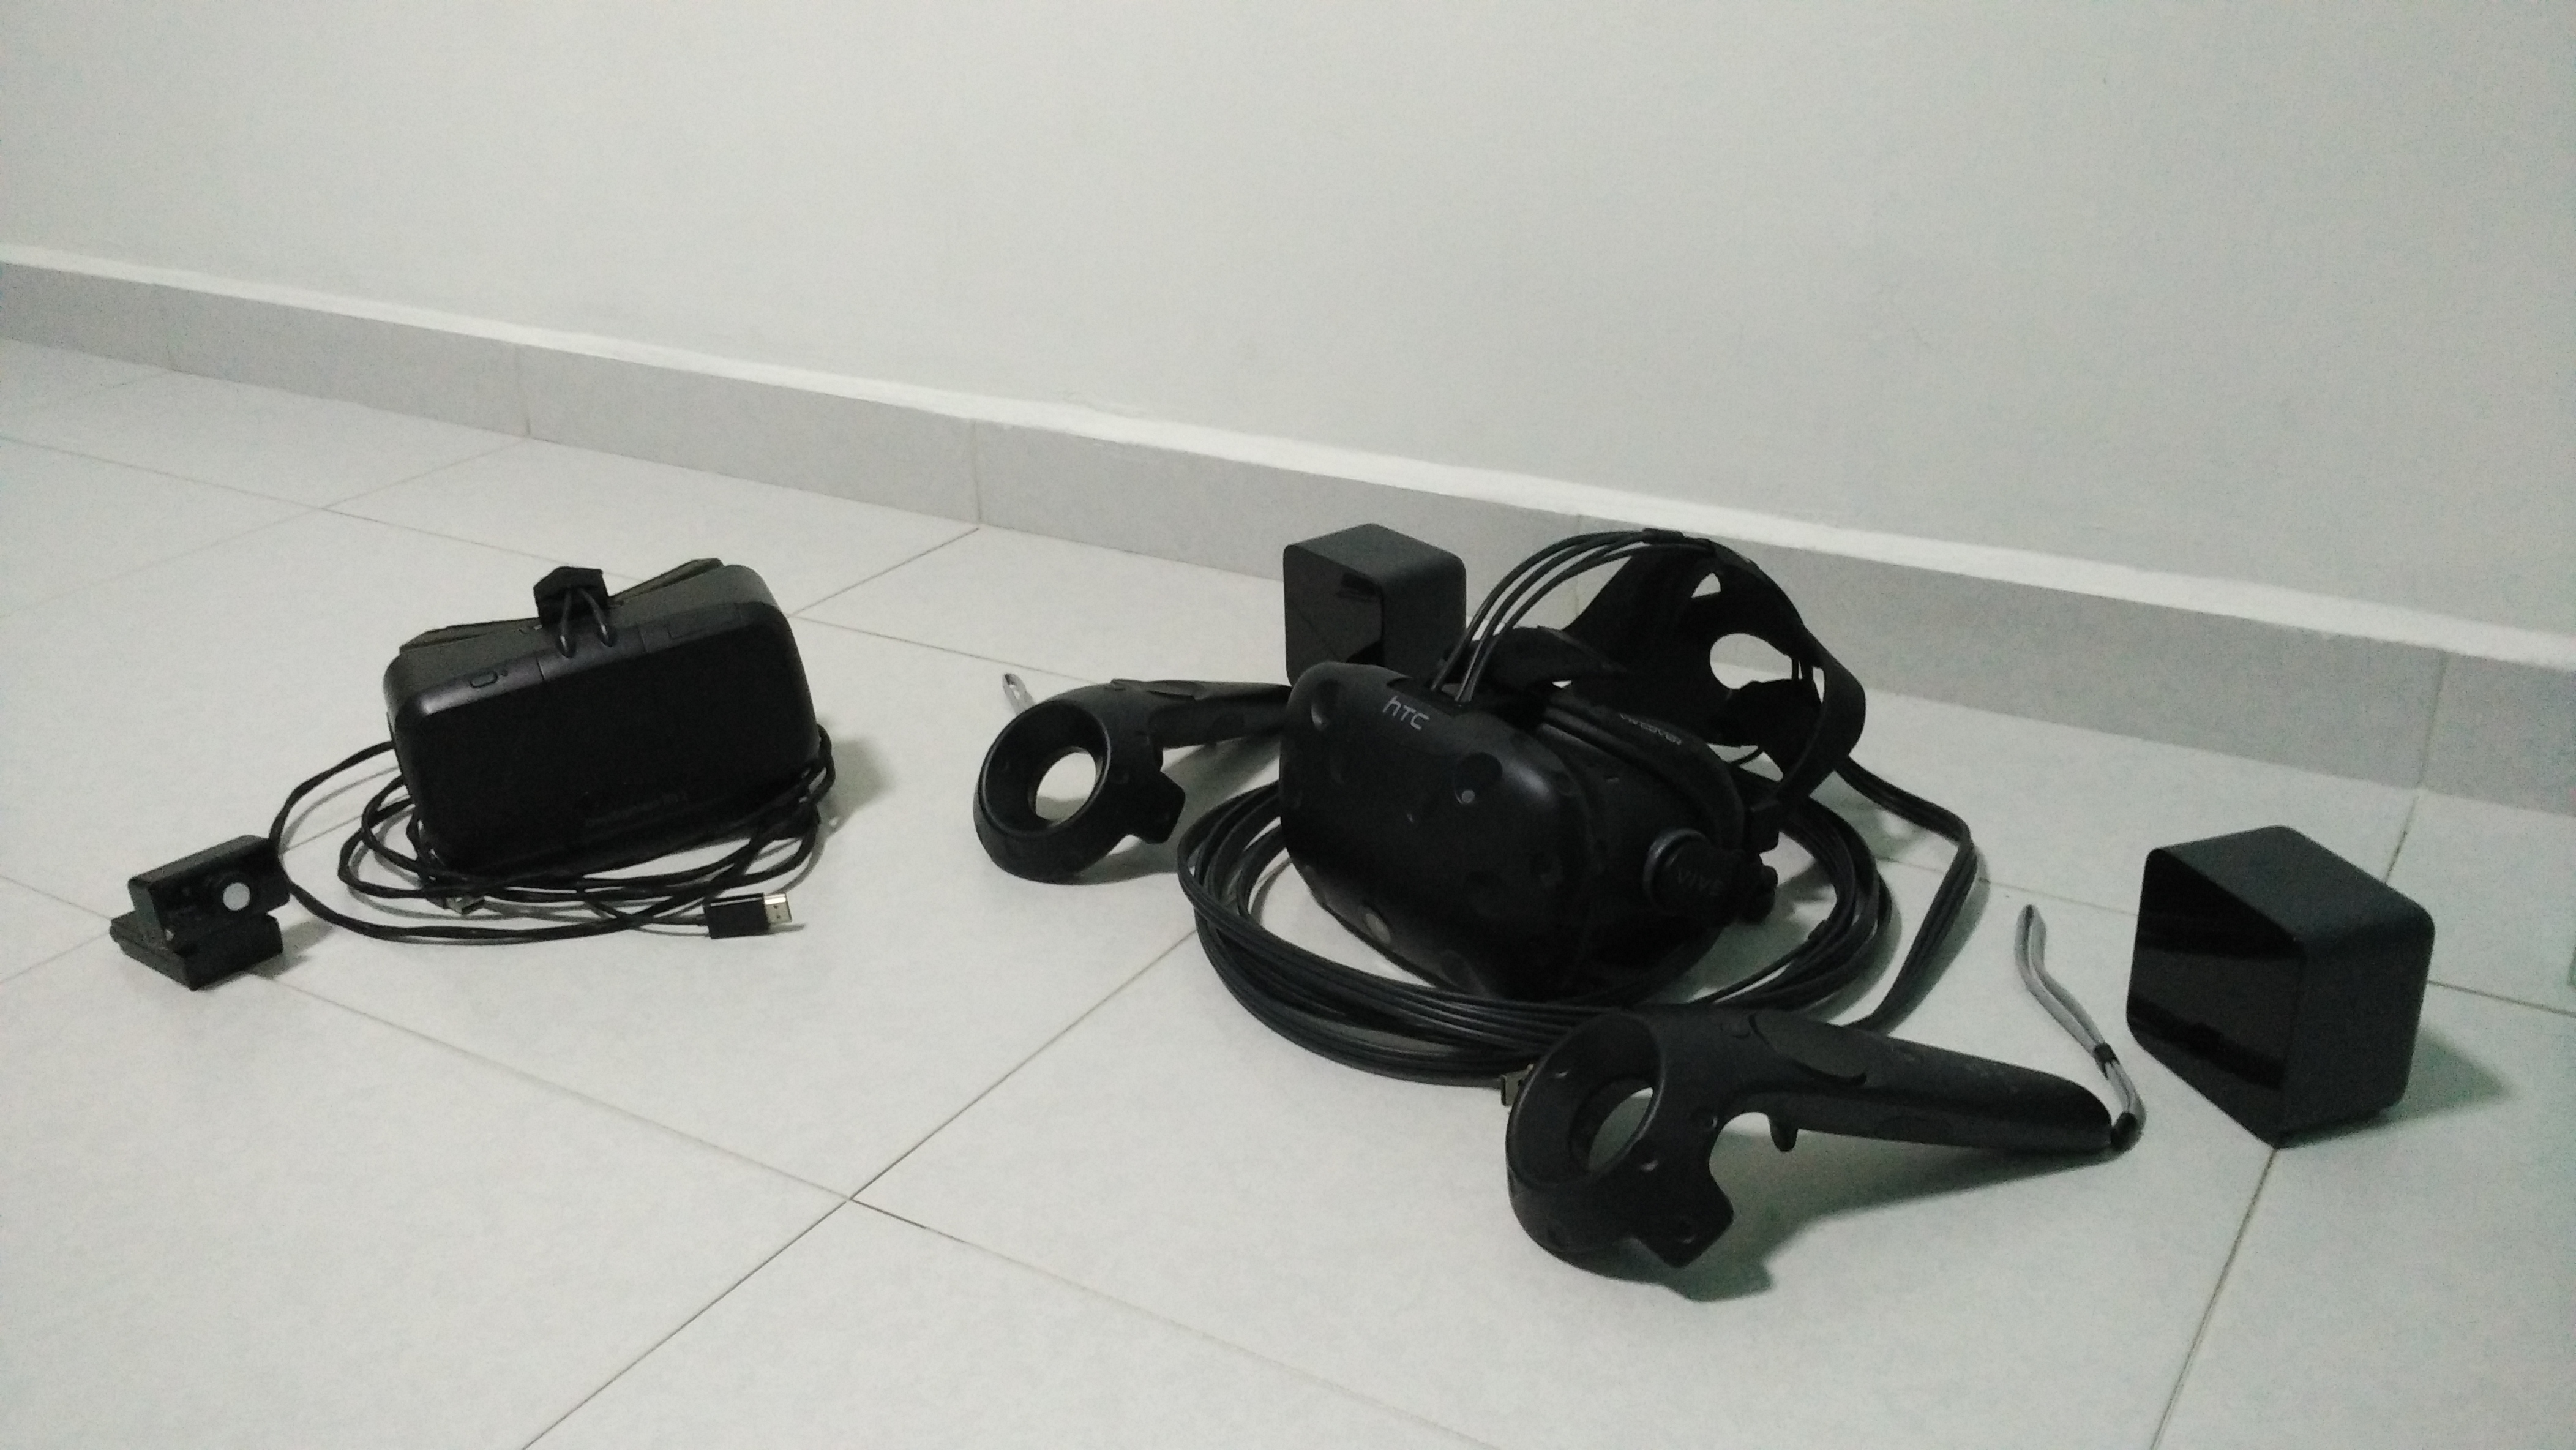 VR Head Mounted Display Part 1: High-End HMD